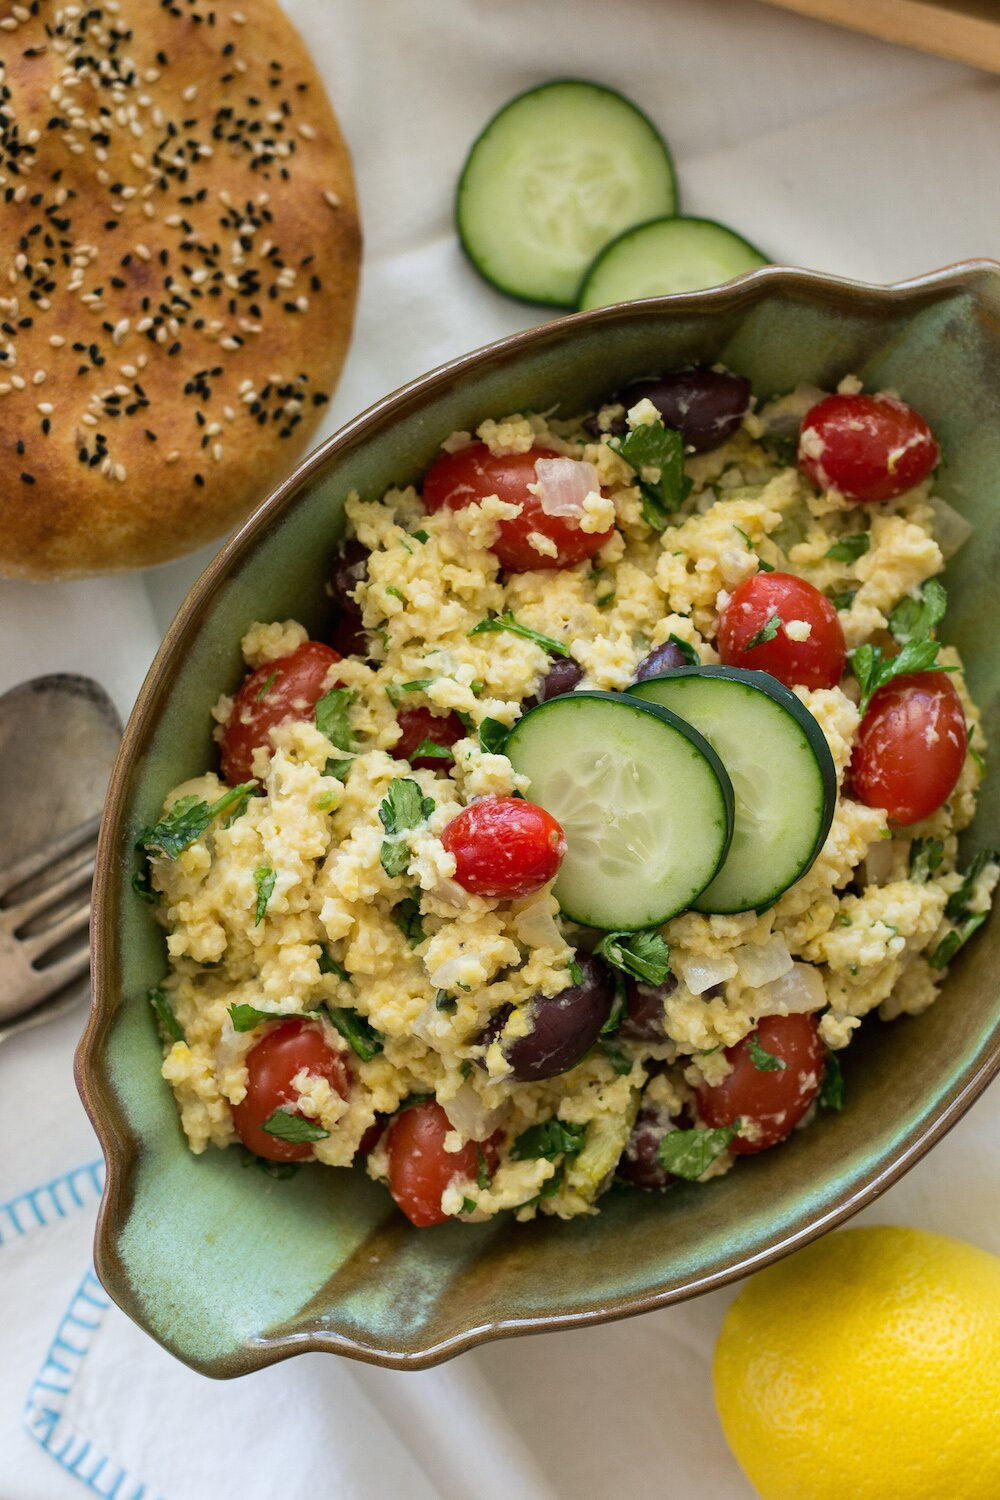 Warm Millet Salad. Gluten-free, No Added Oil.